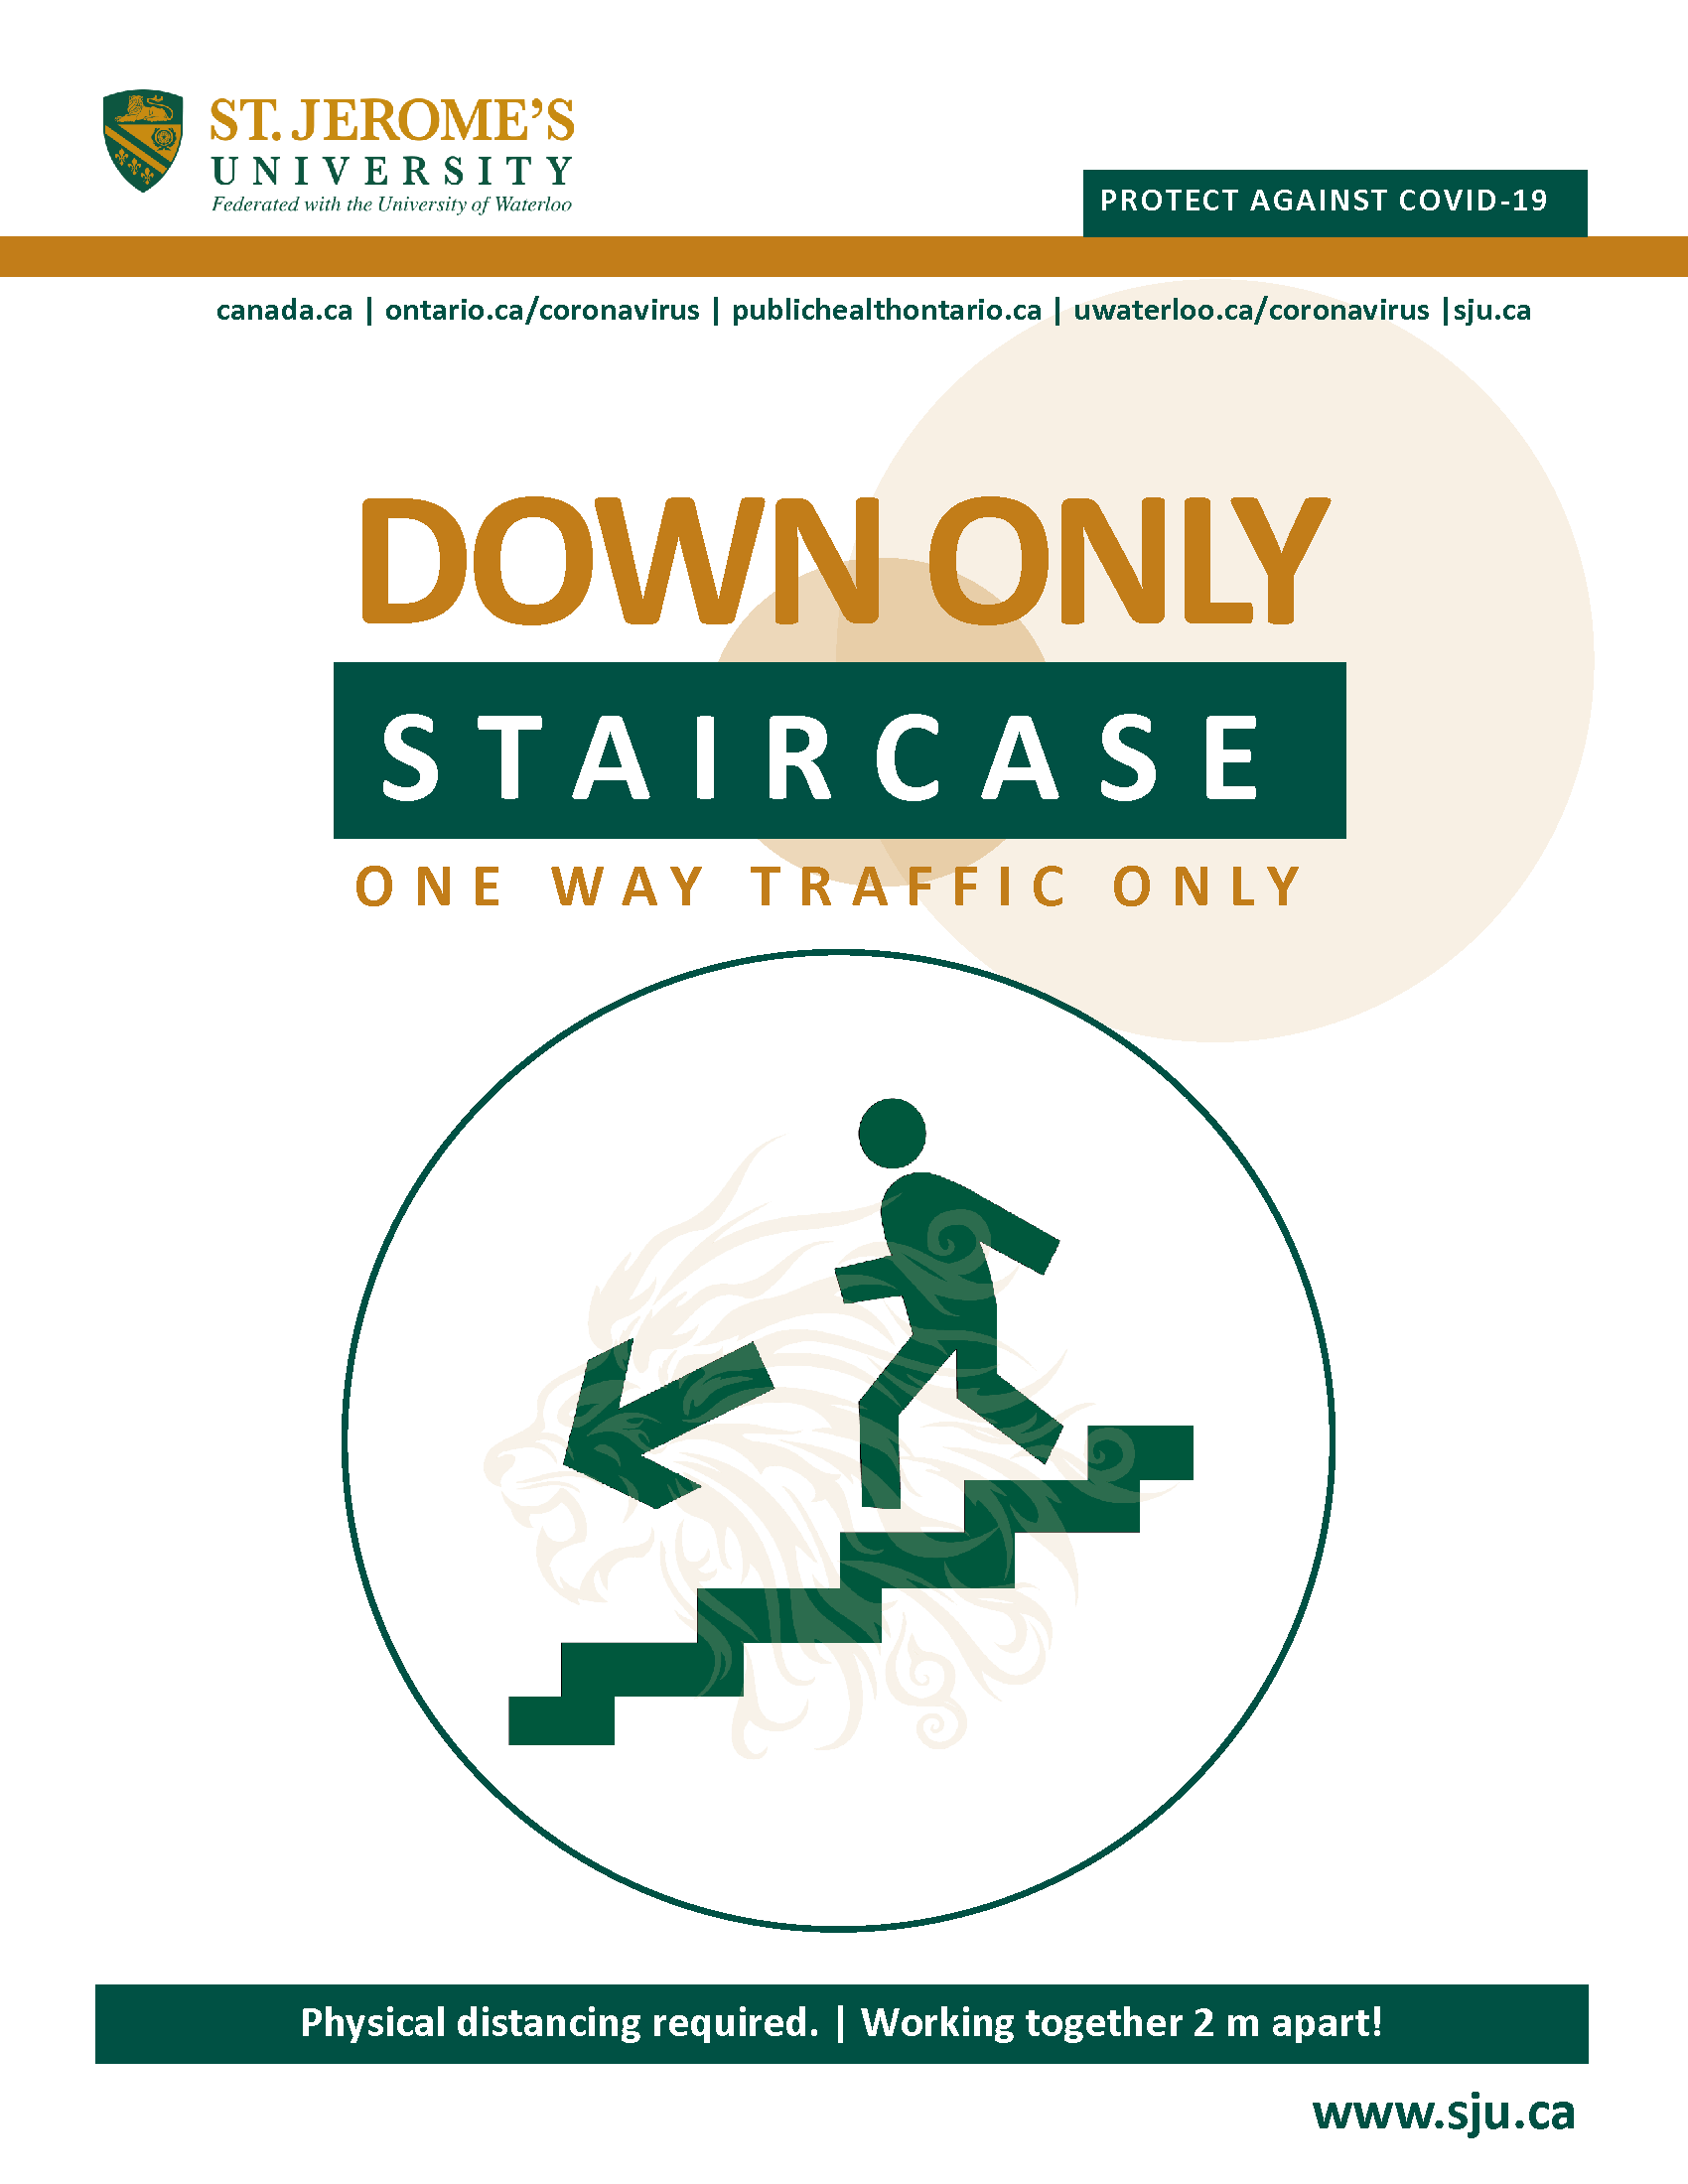 A stylized image of a person walking down a flight of stairs with the words Down Only Staircase - One Way Traffic Only above it